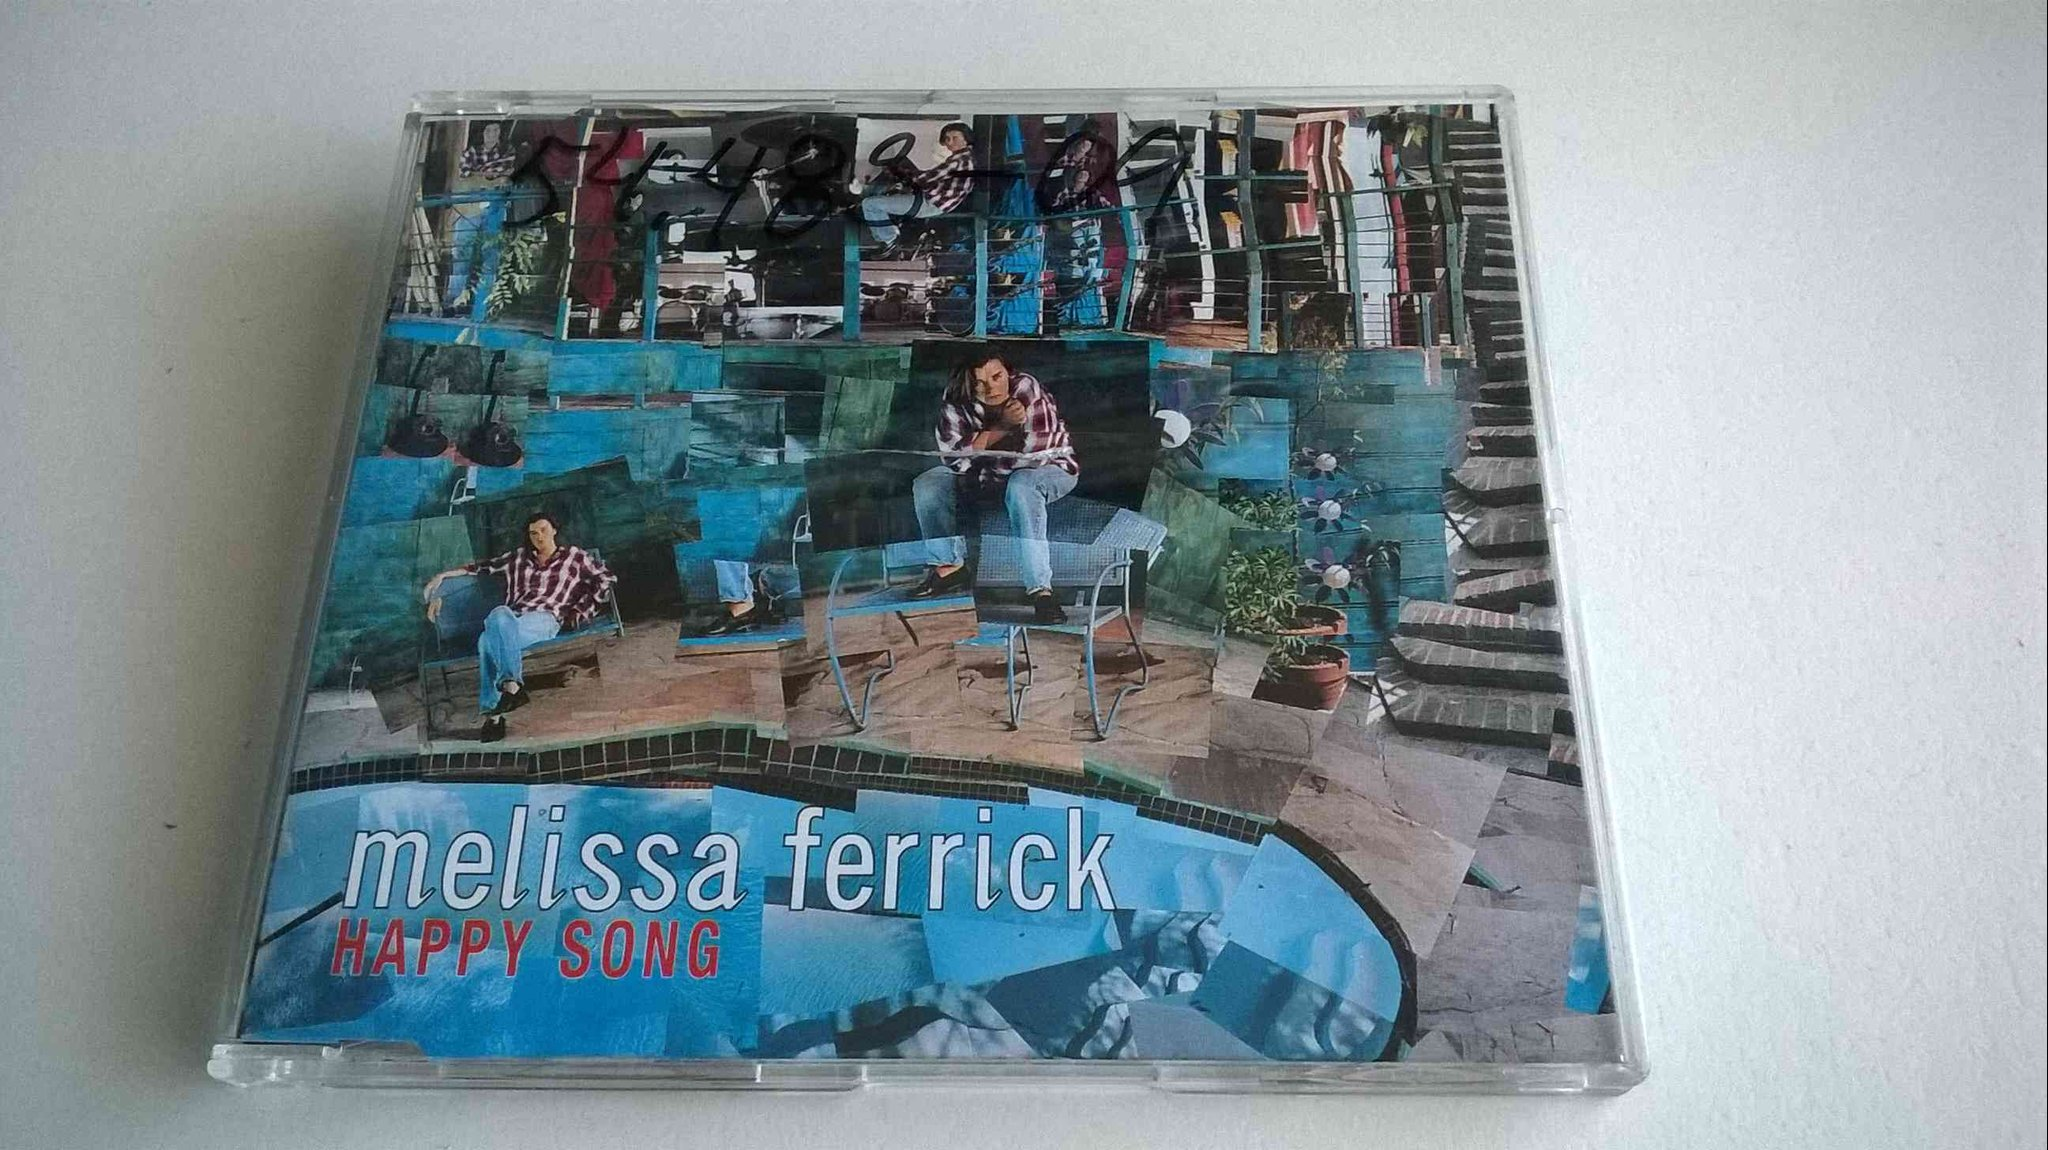 Melissa Ferrick - Happy Song, CD, single